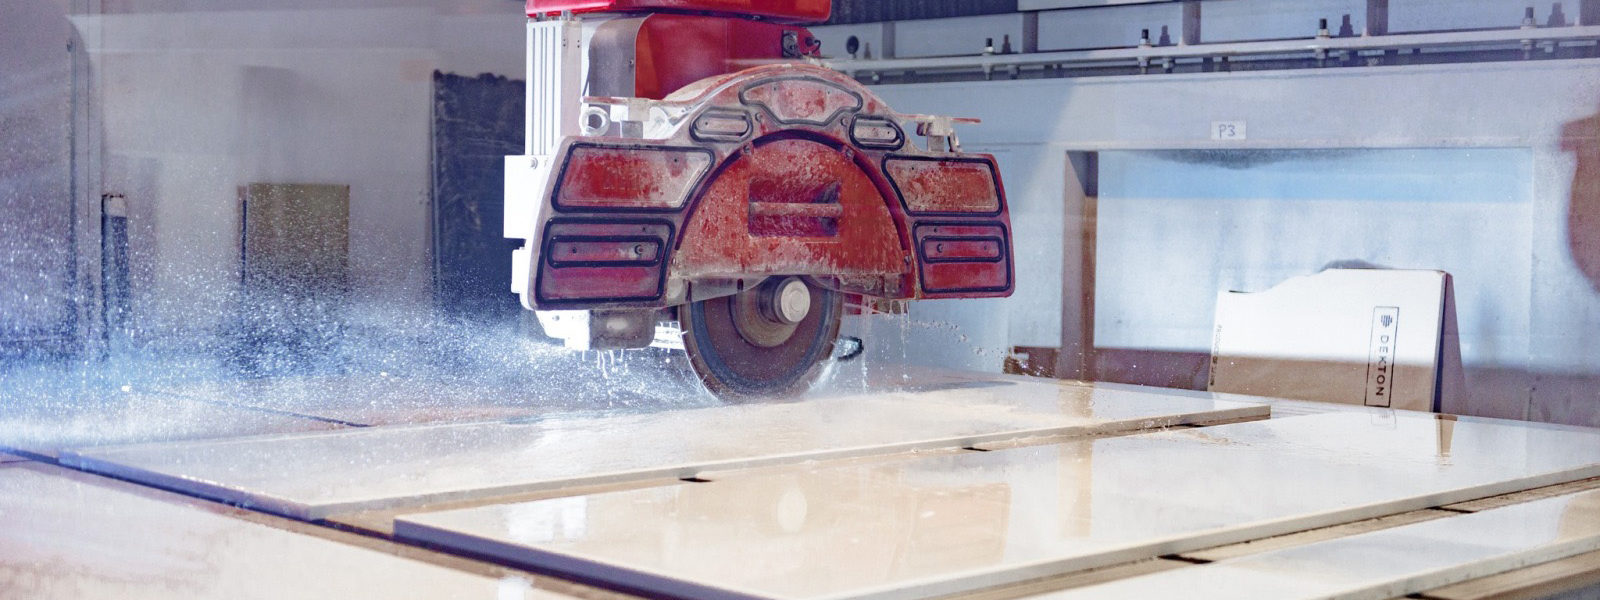 Industrial Saw cutting marble worktop.